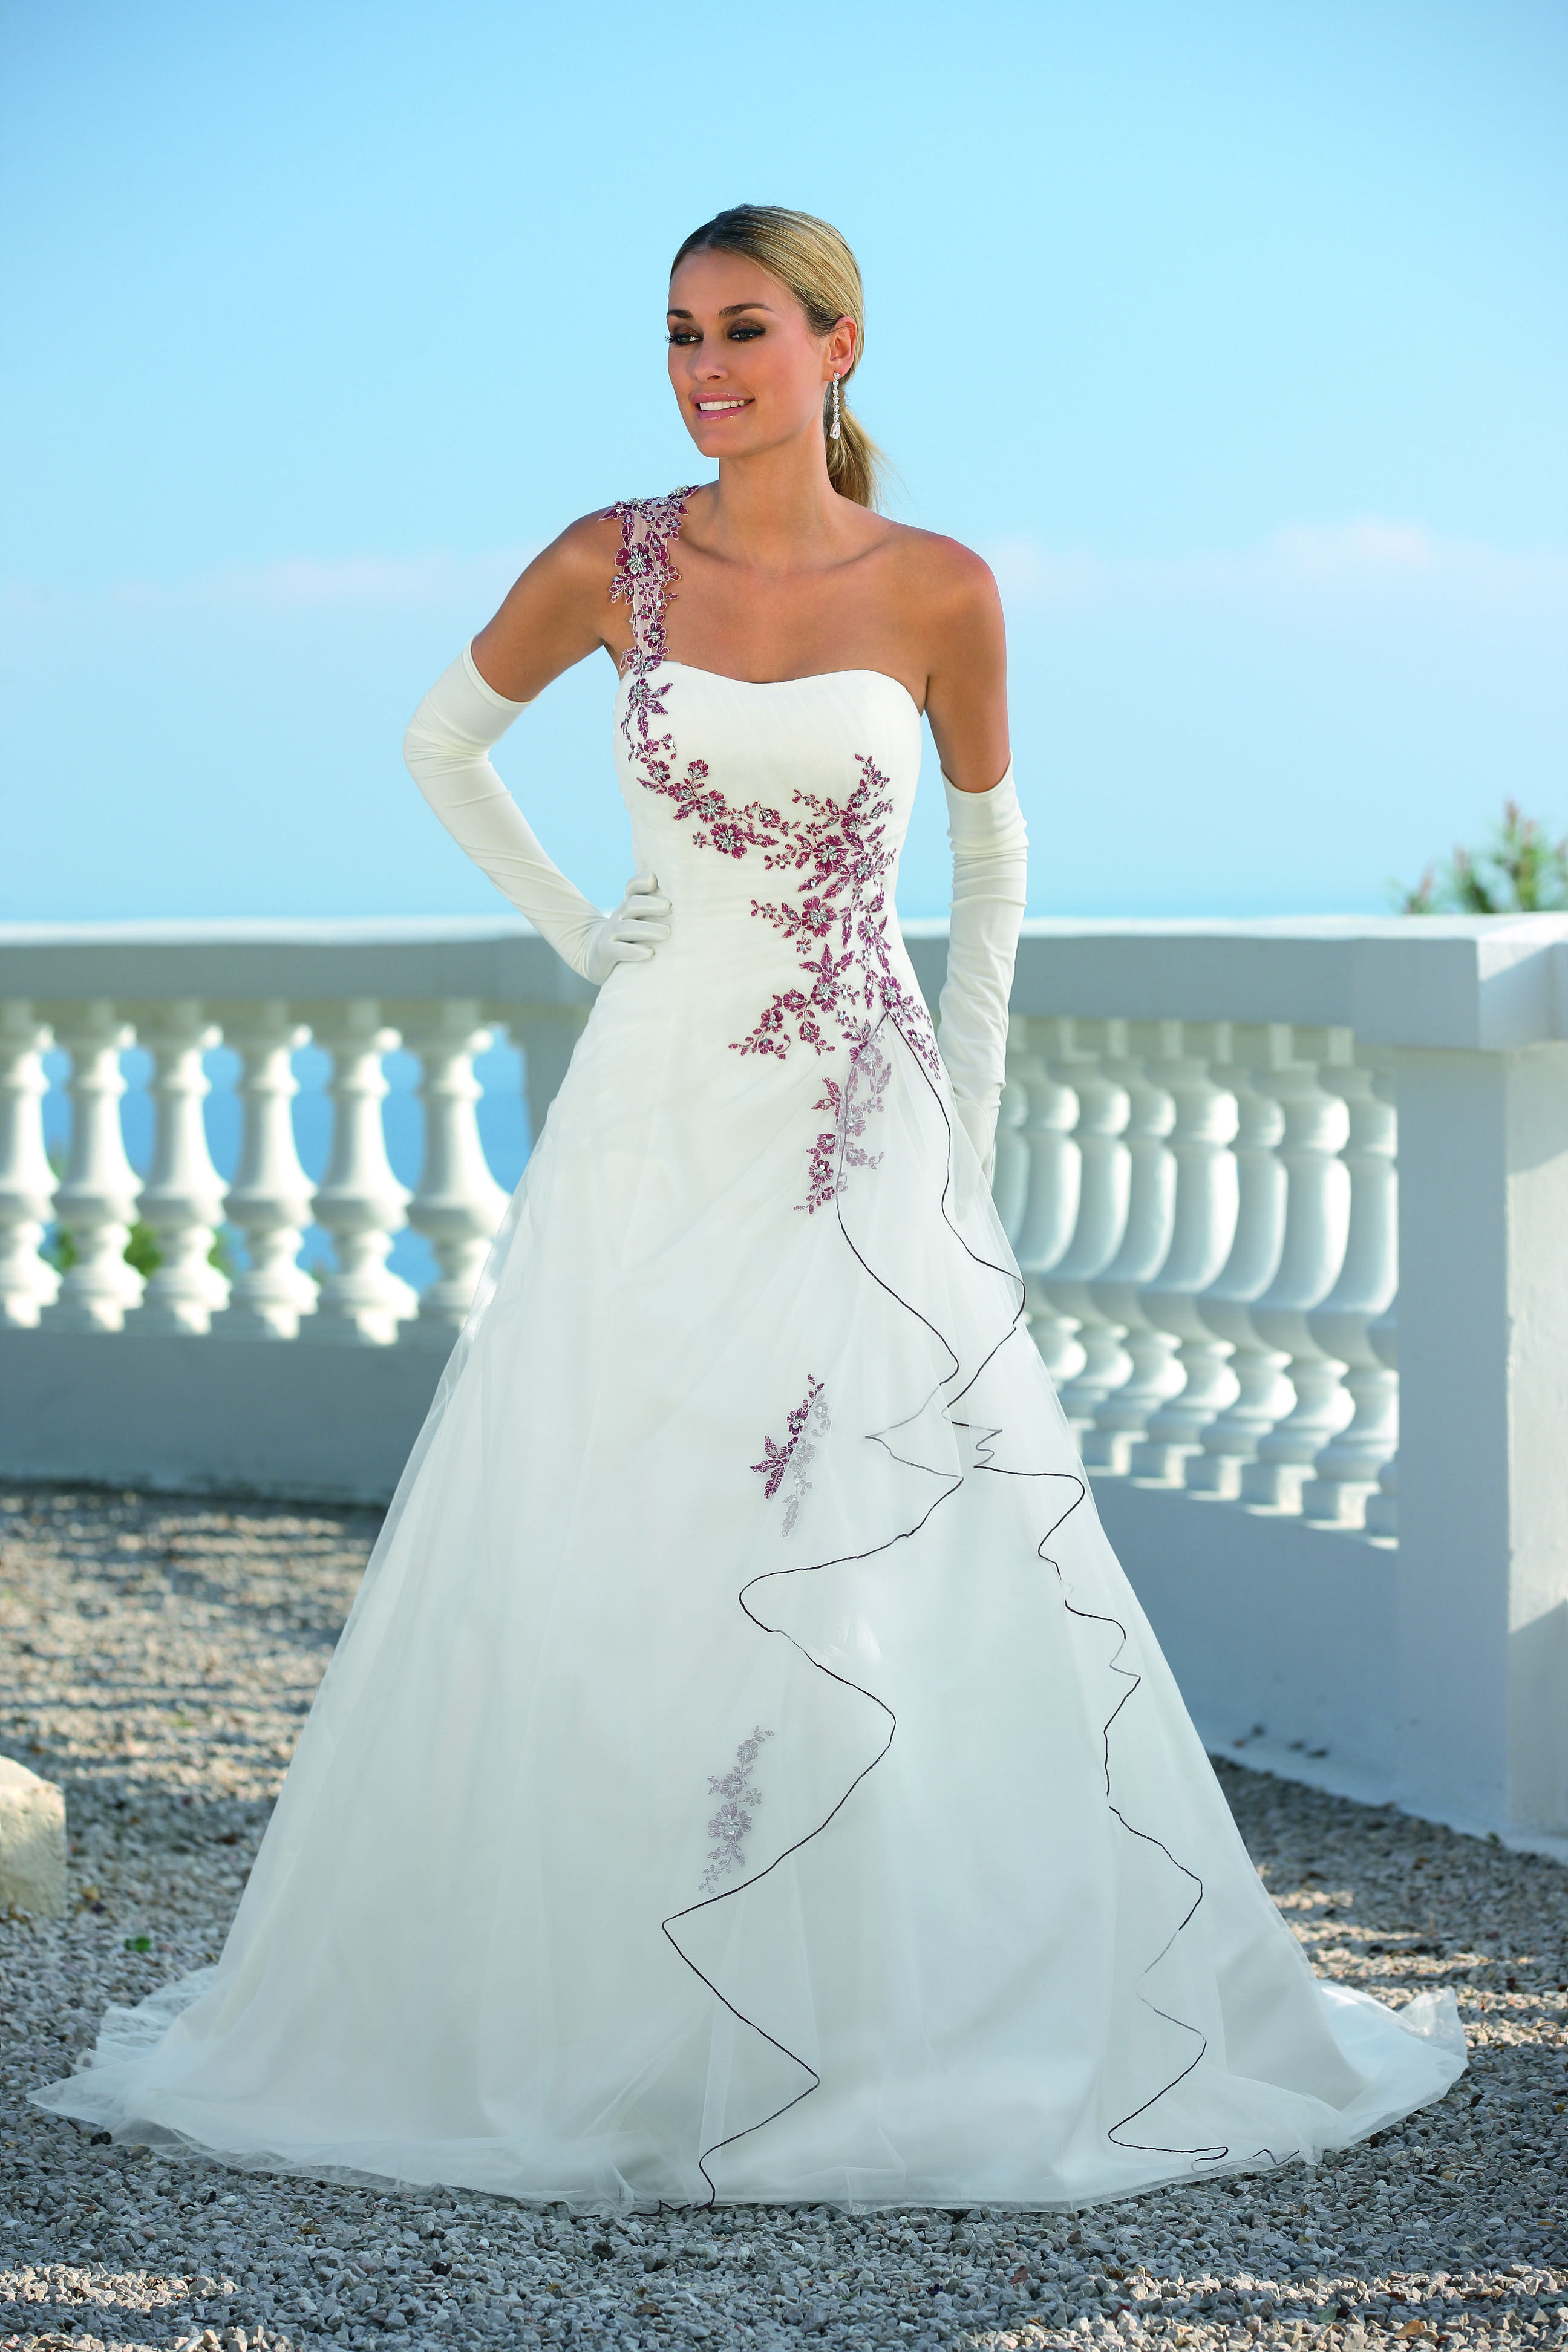 Ladybird Wedding Dress Style 33056 Ivory-Burgundy-Silver | Bridal ...